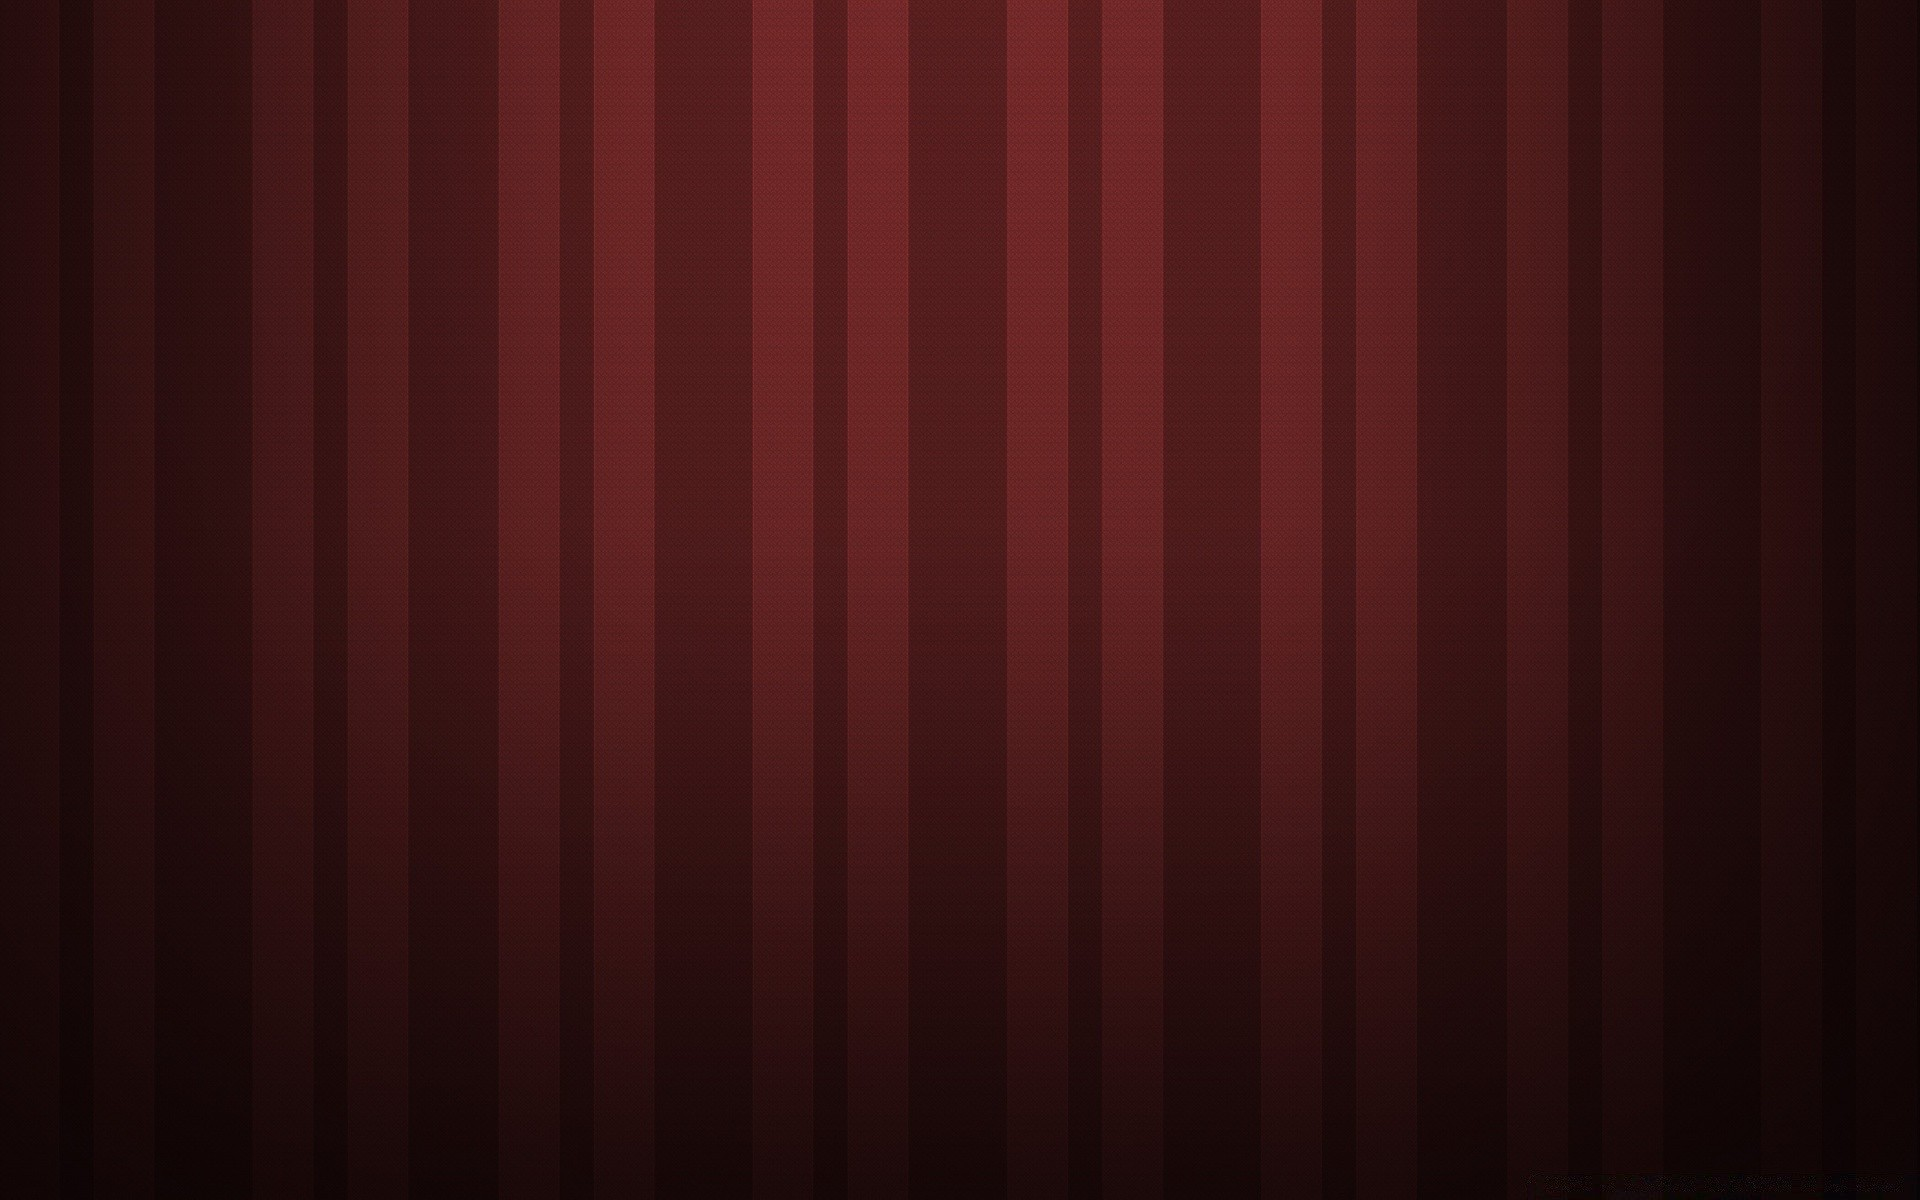 Red Stripe Pattern IPhone Wallpapers For Free